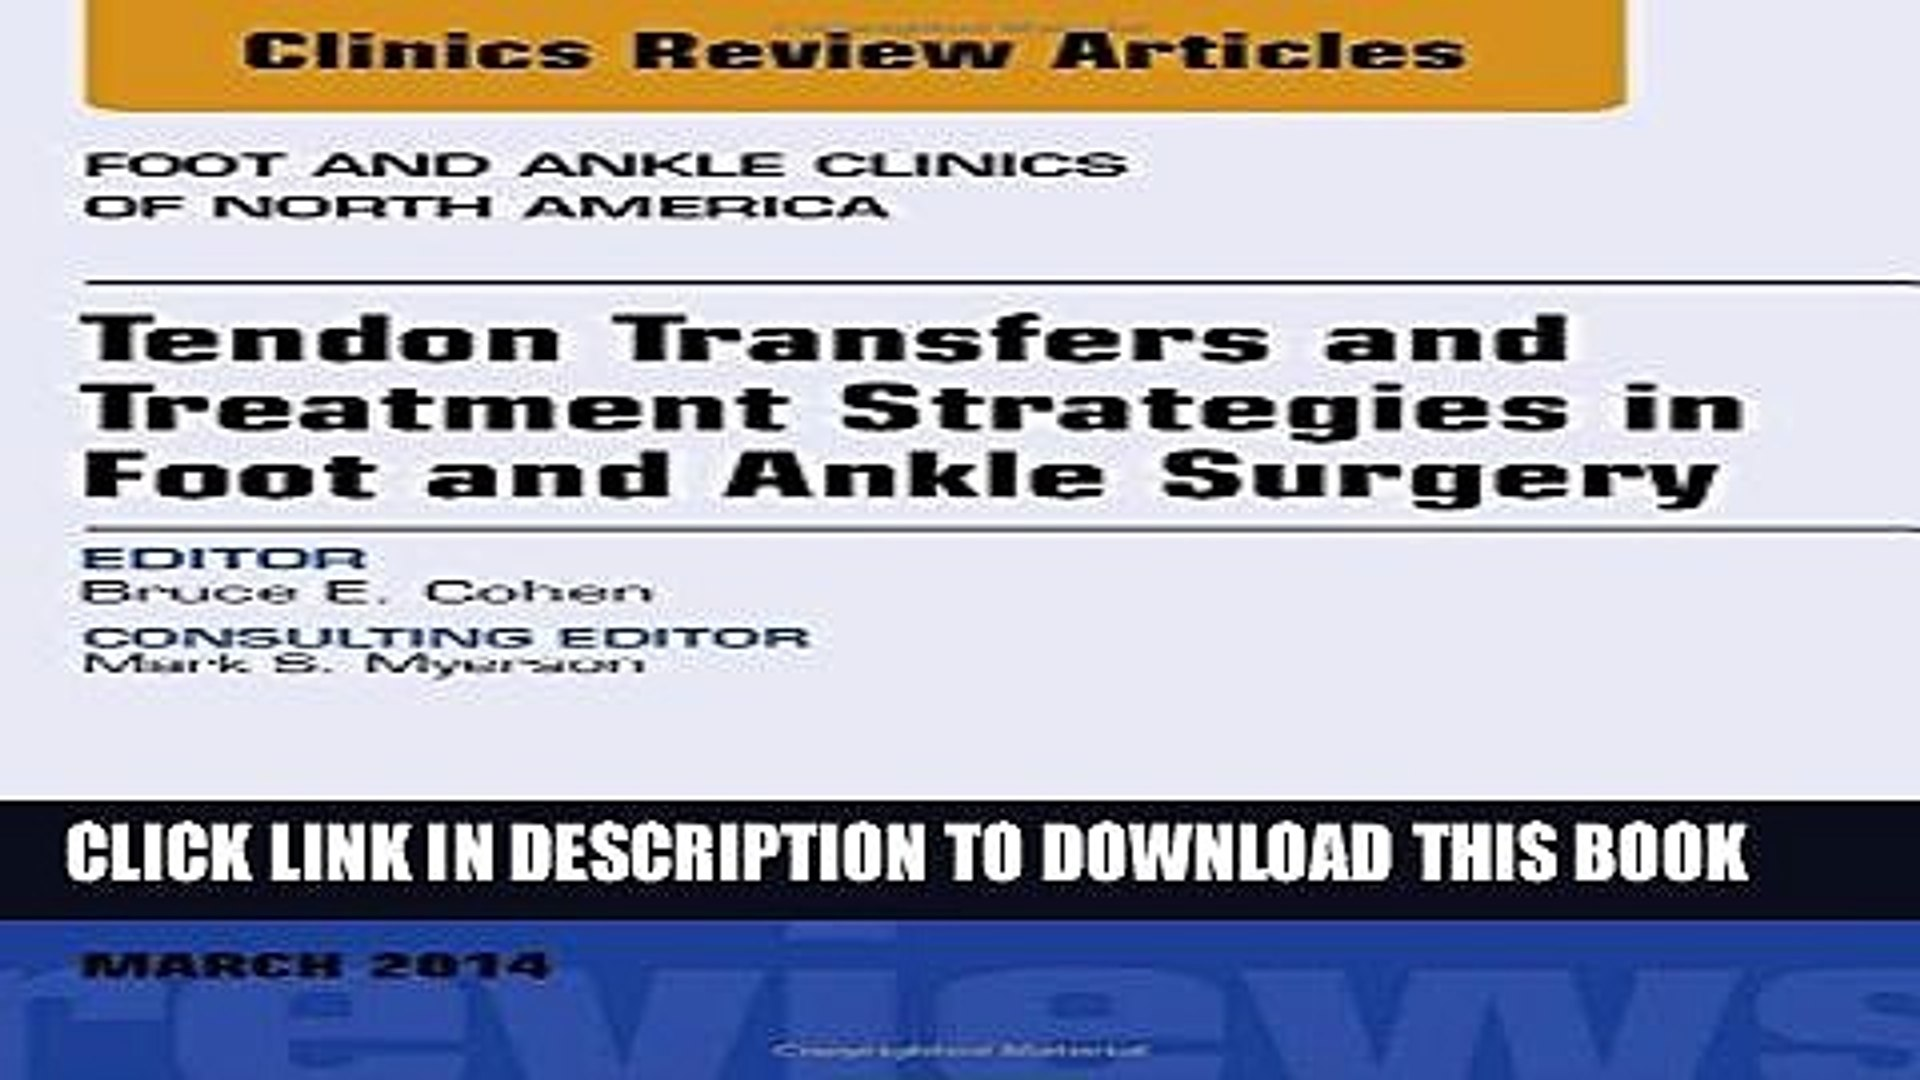 [PDF] Tendon Transfers and Treatment Strategies in Foot and Ankle Surgery, An Issue of Foot and